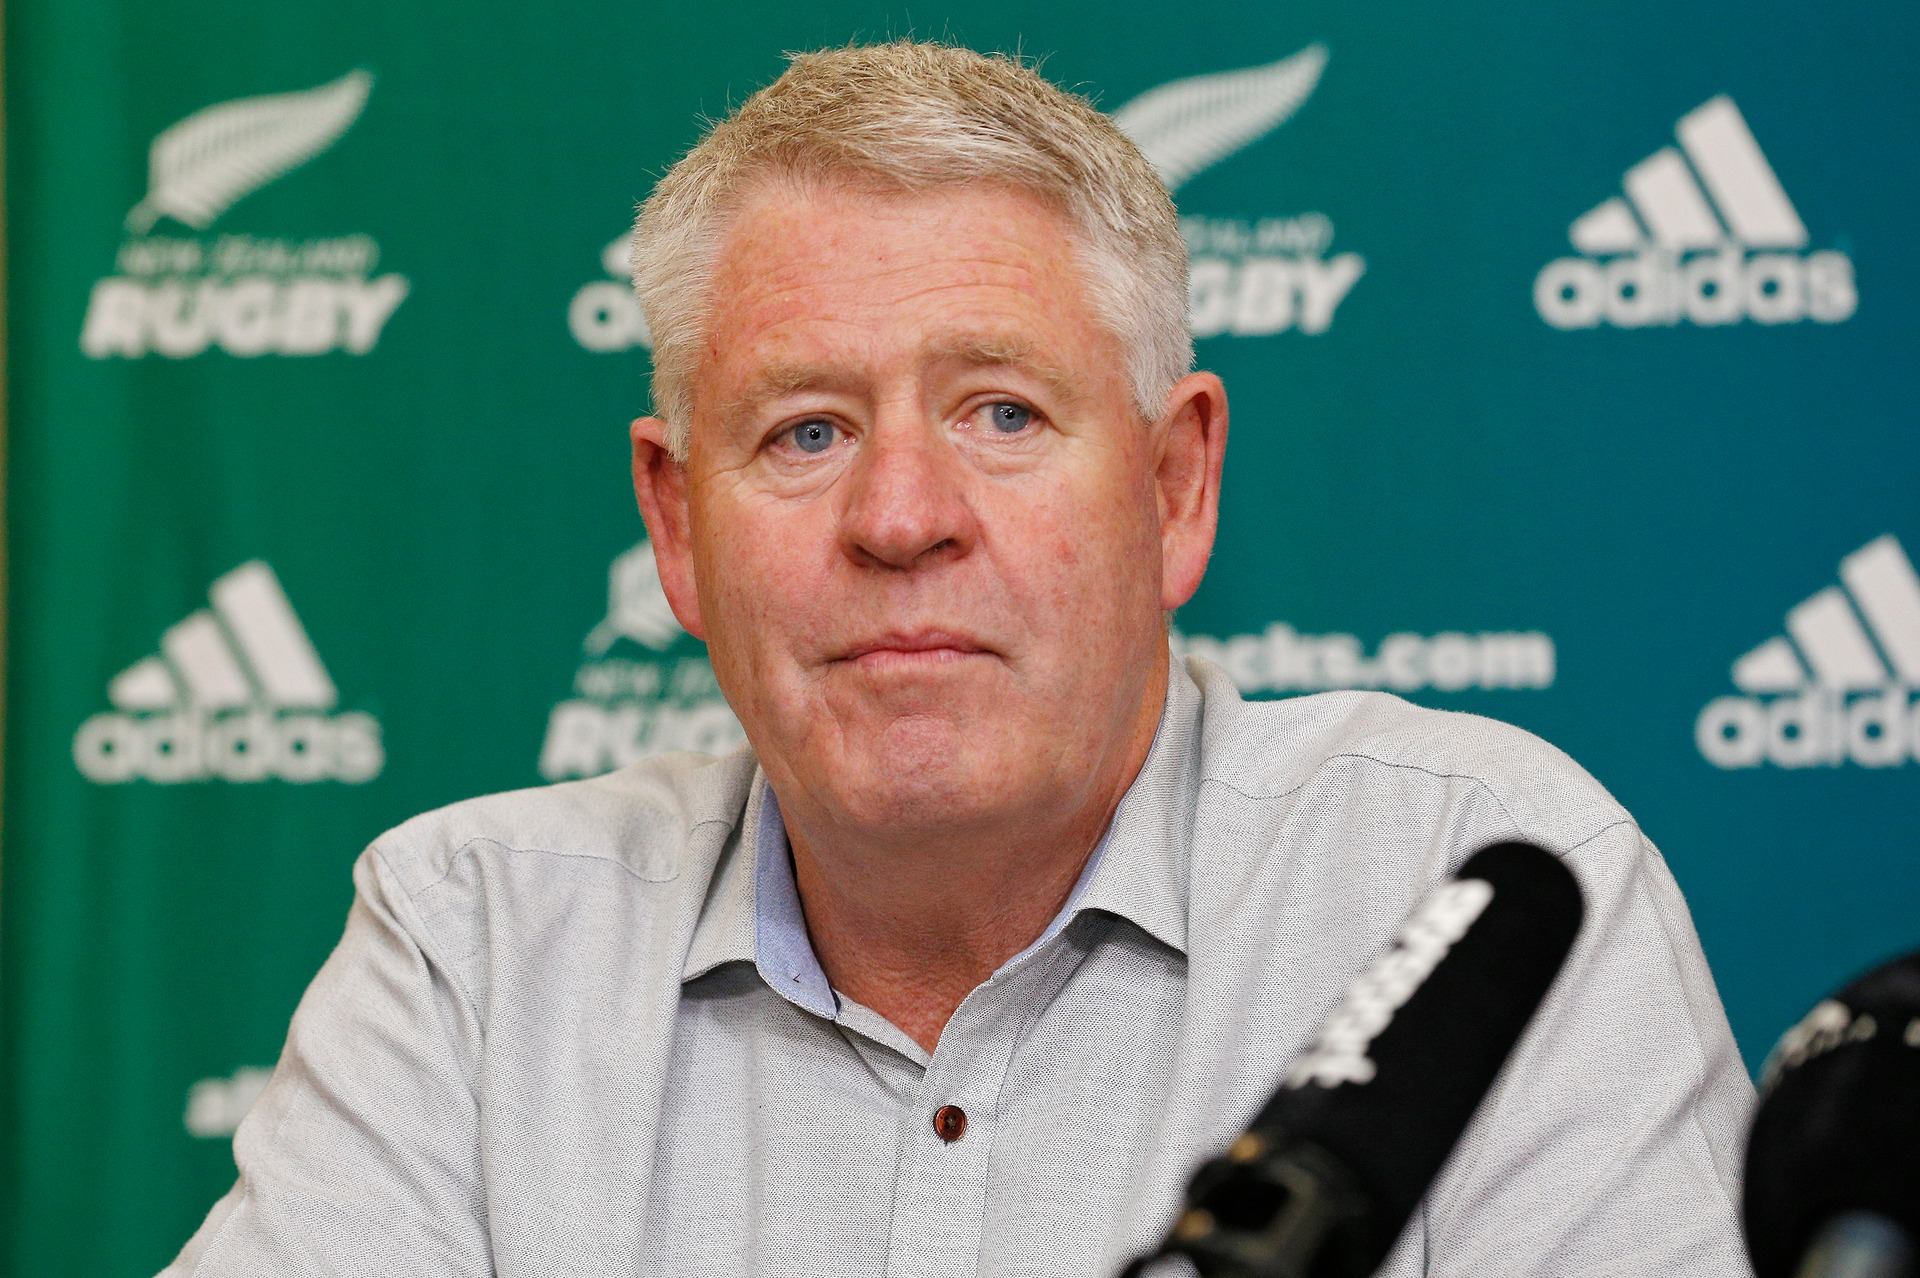 Rugby's civil war? NZR boss' rebuke on eve of World Cup